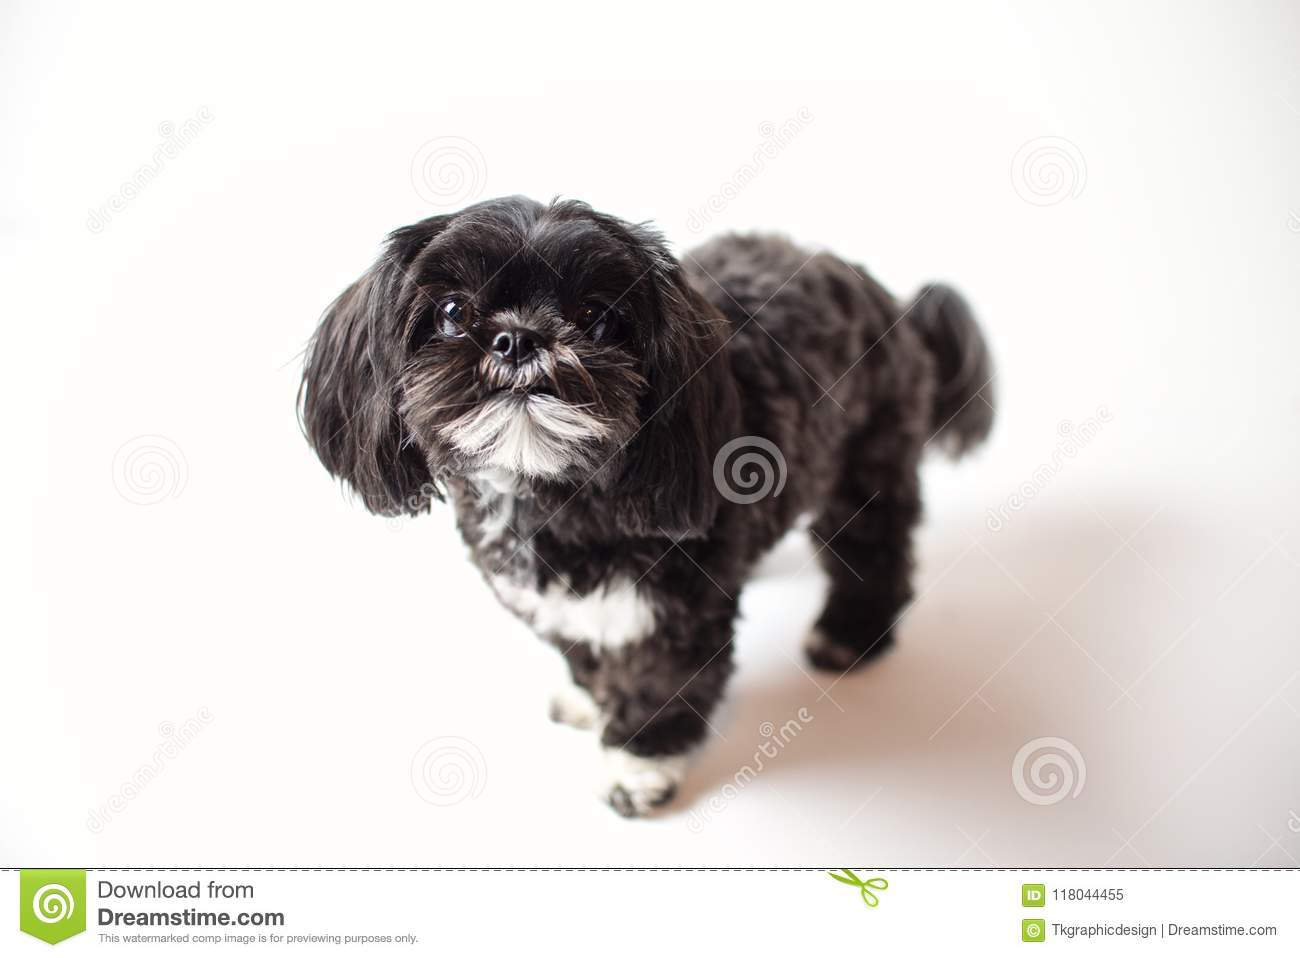 Adorable Miniature Shih Tzu Puppy Dog Stock Image Image Of Bred